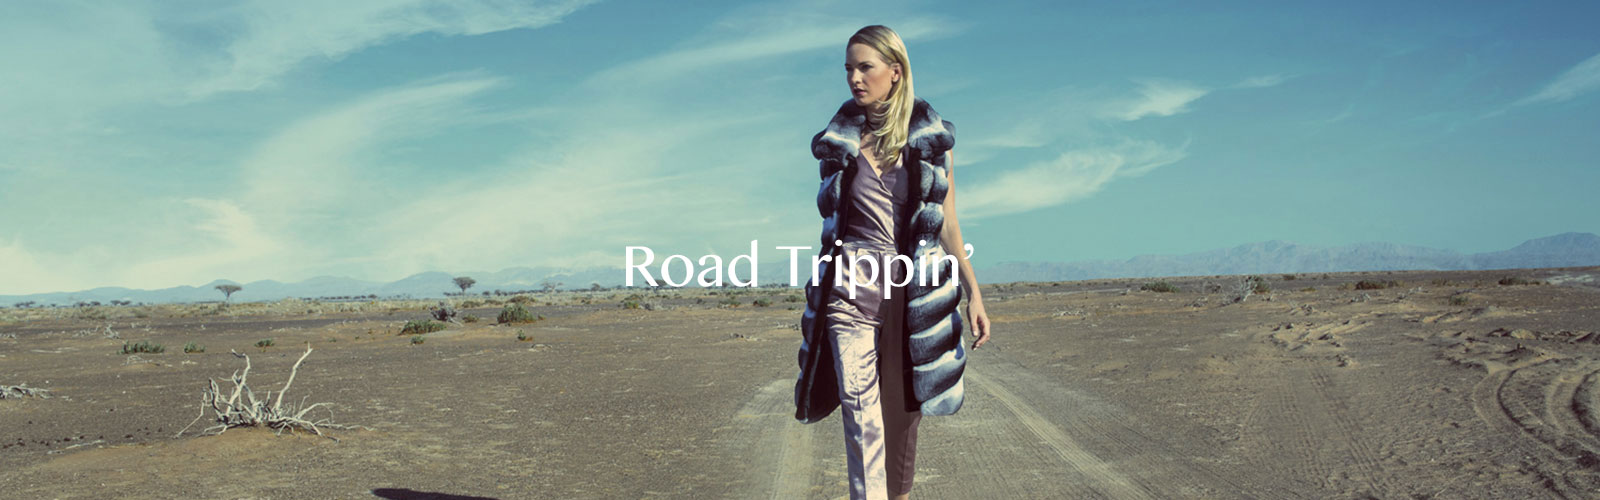 Road-Trippin-header-with-text